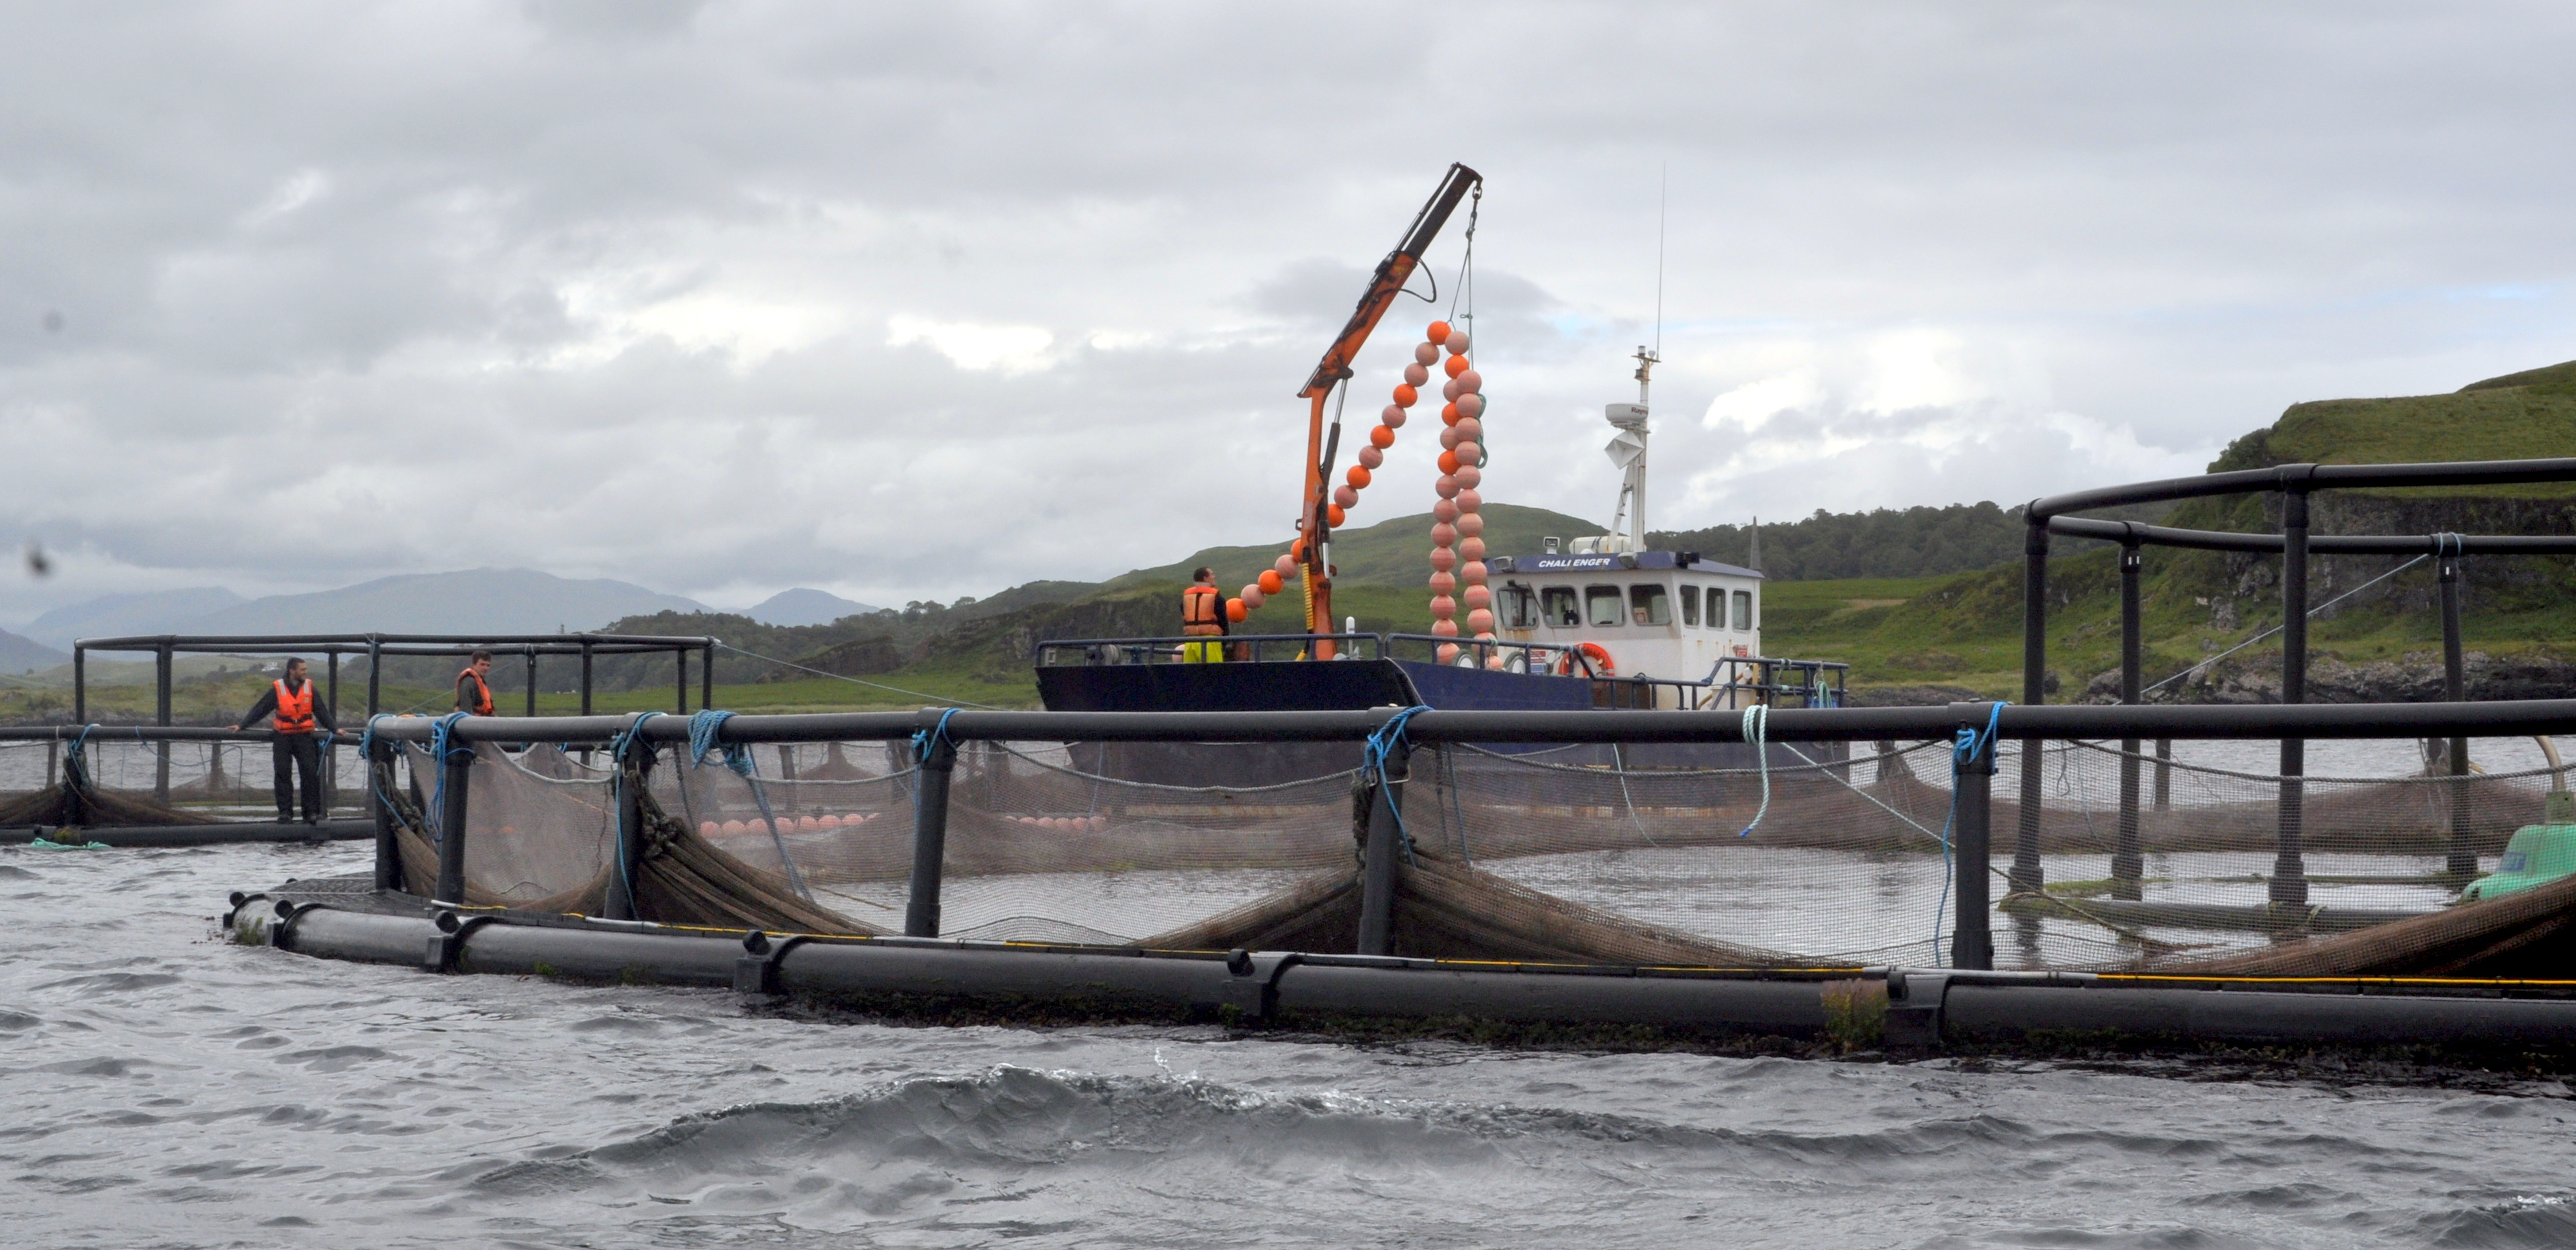 ANTI POLLUTION RULES RELAXED FOR SALMON FARMERS